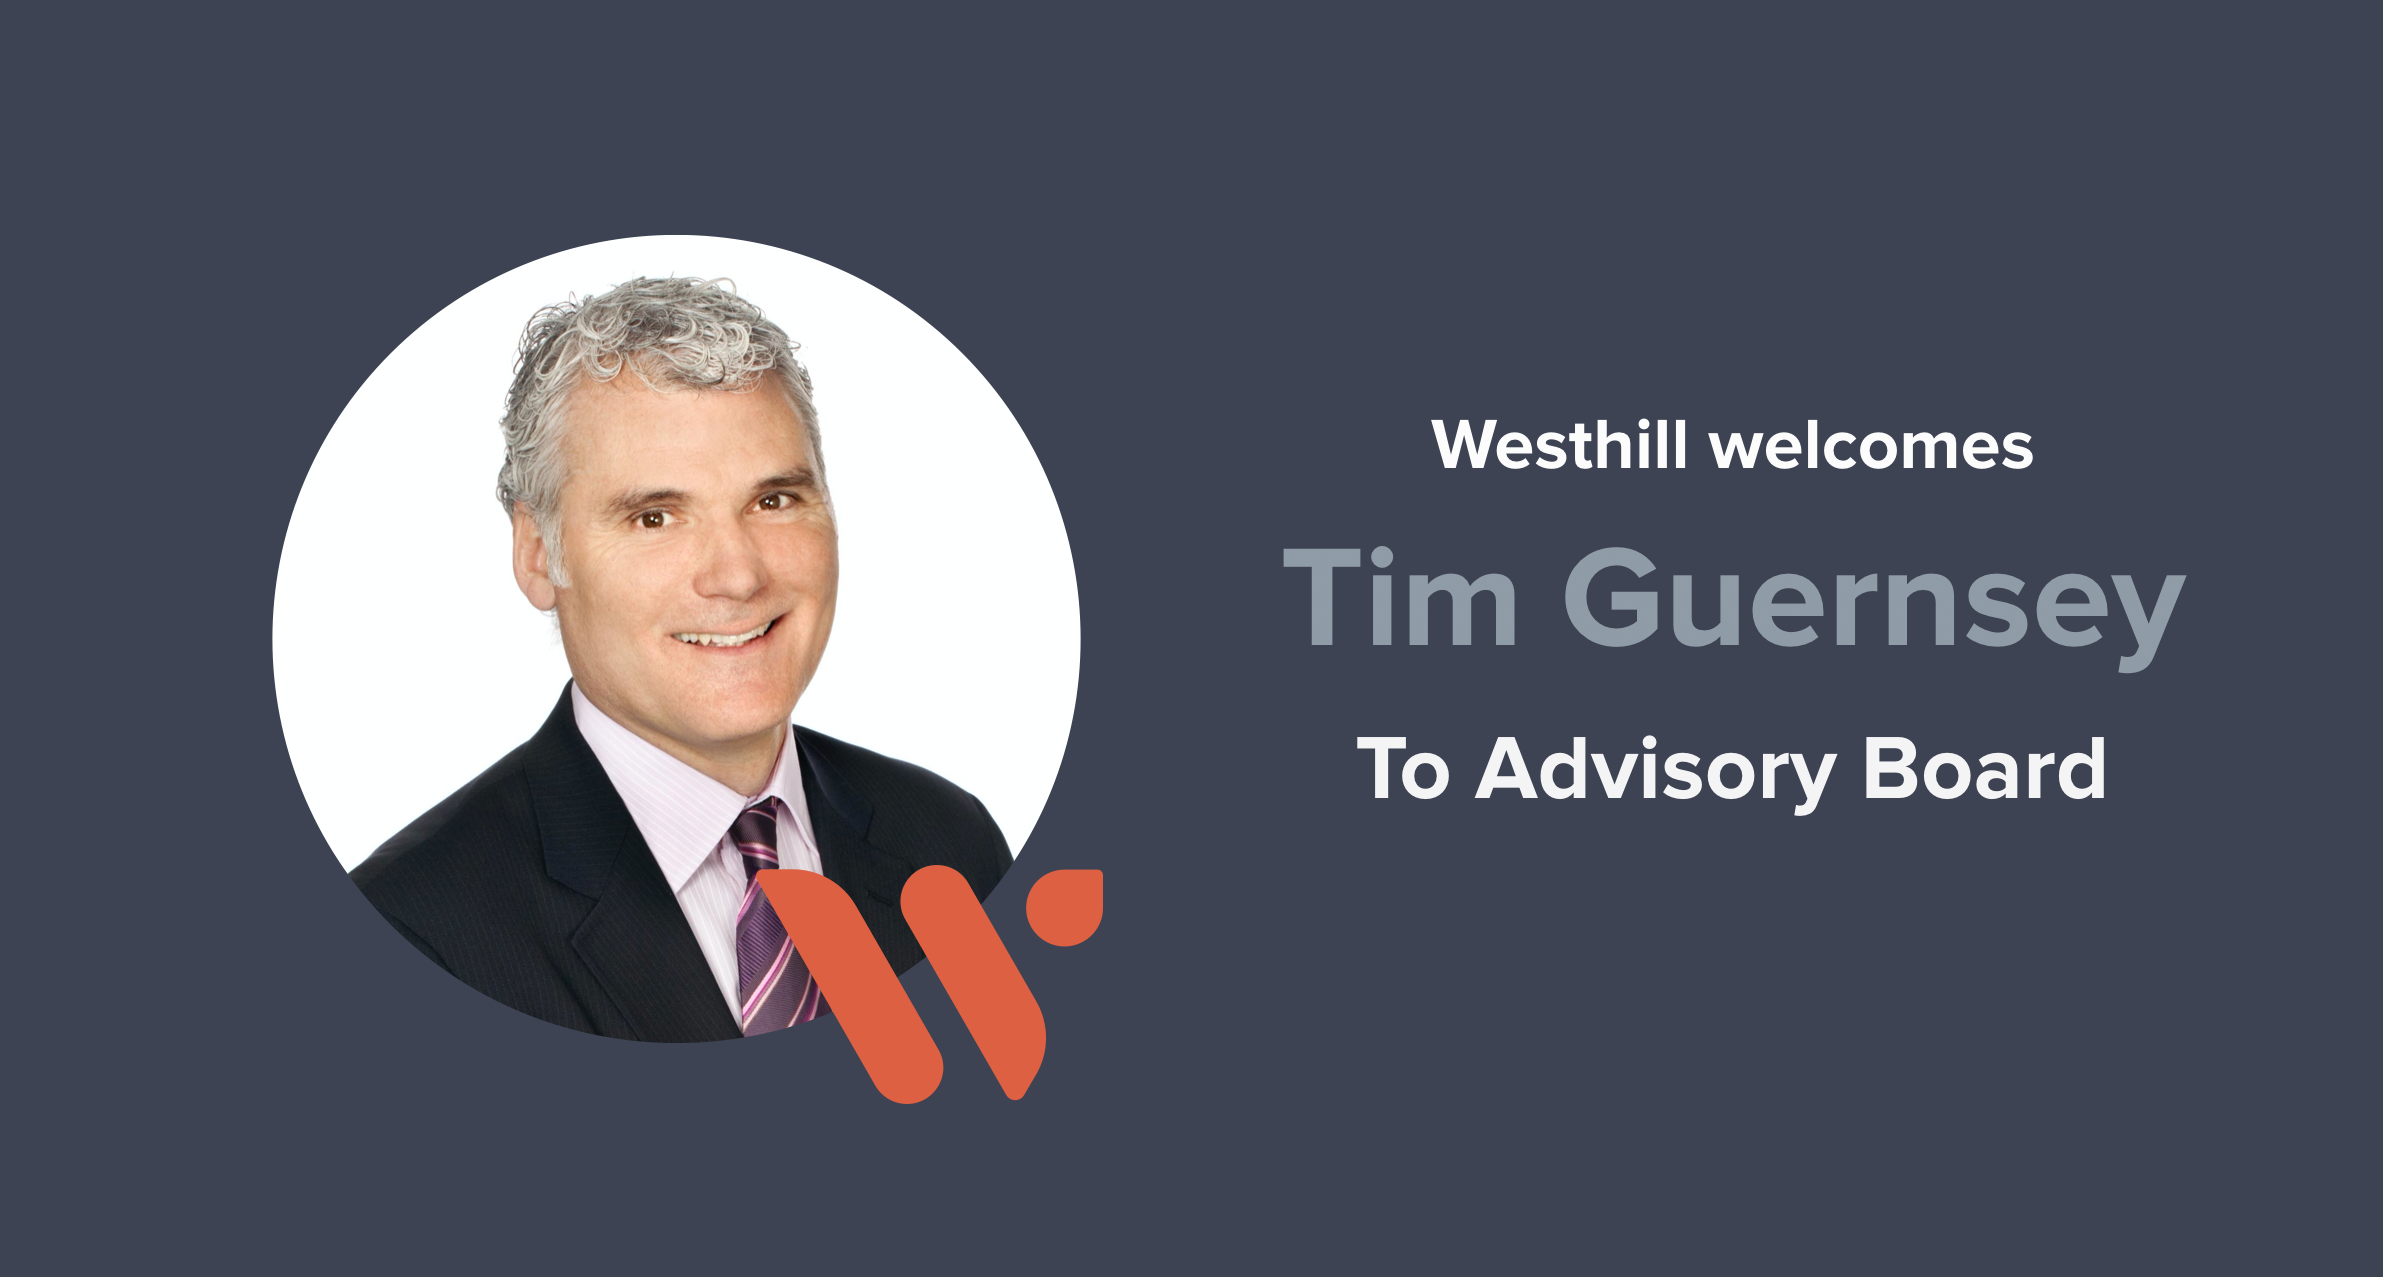 Westhill expands Advisory team, welcomes Tim Guernsey